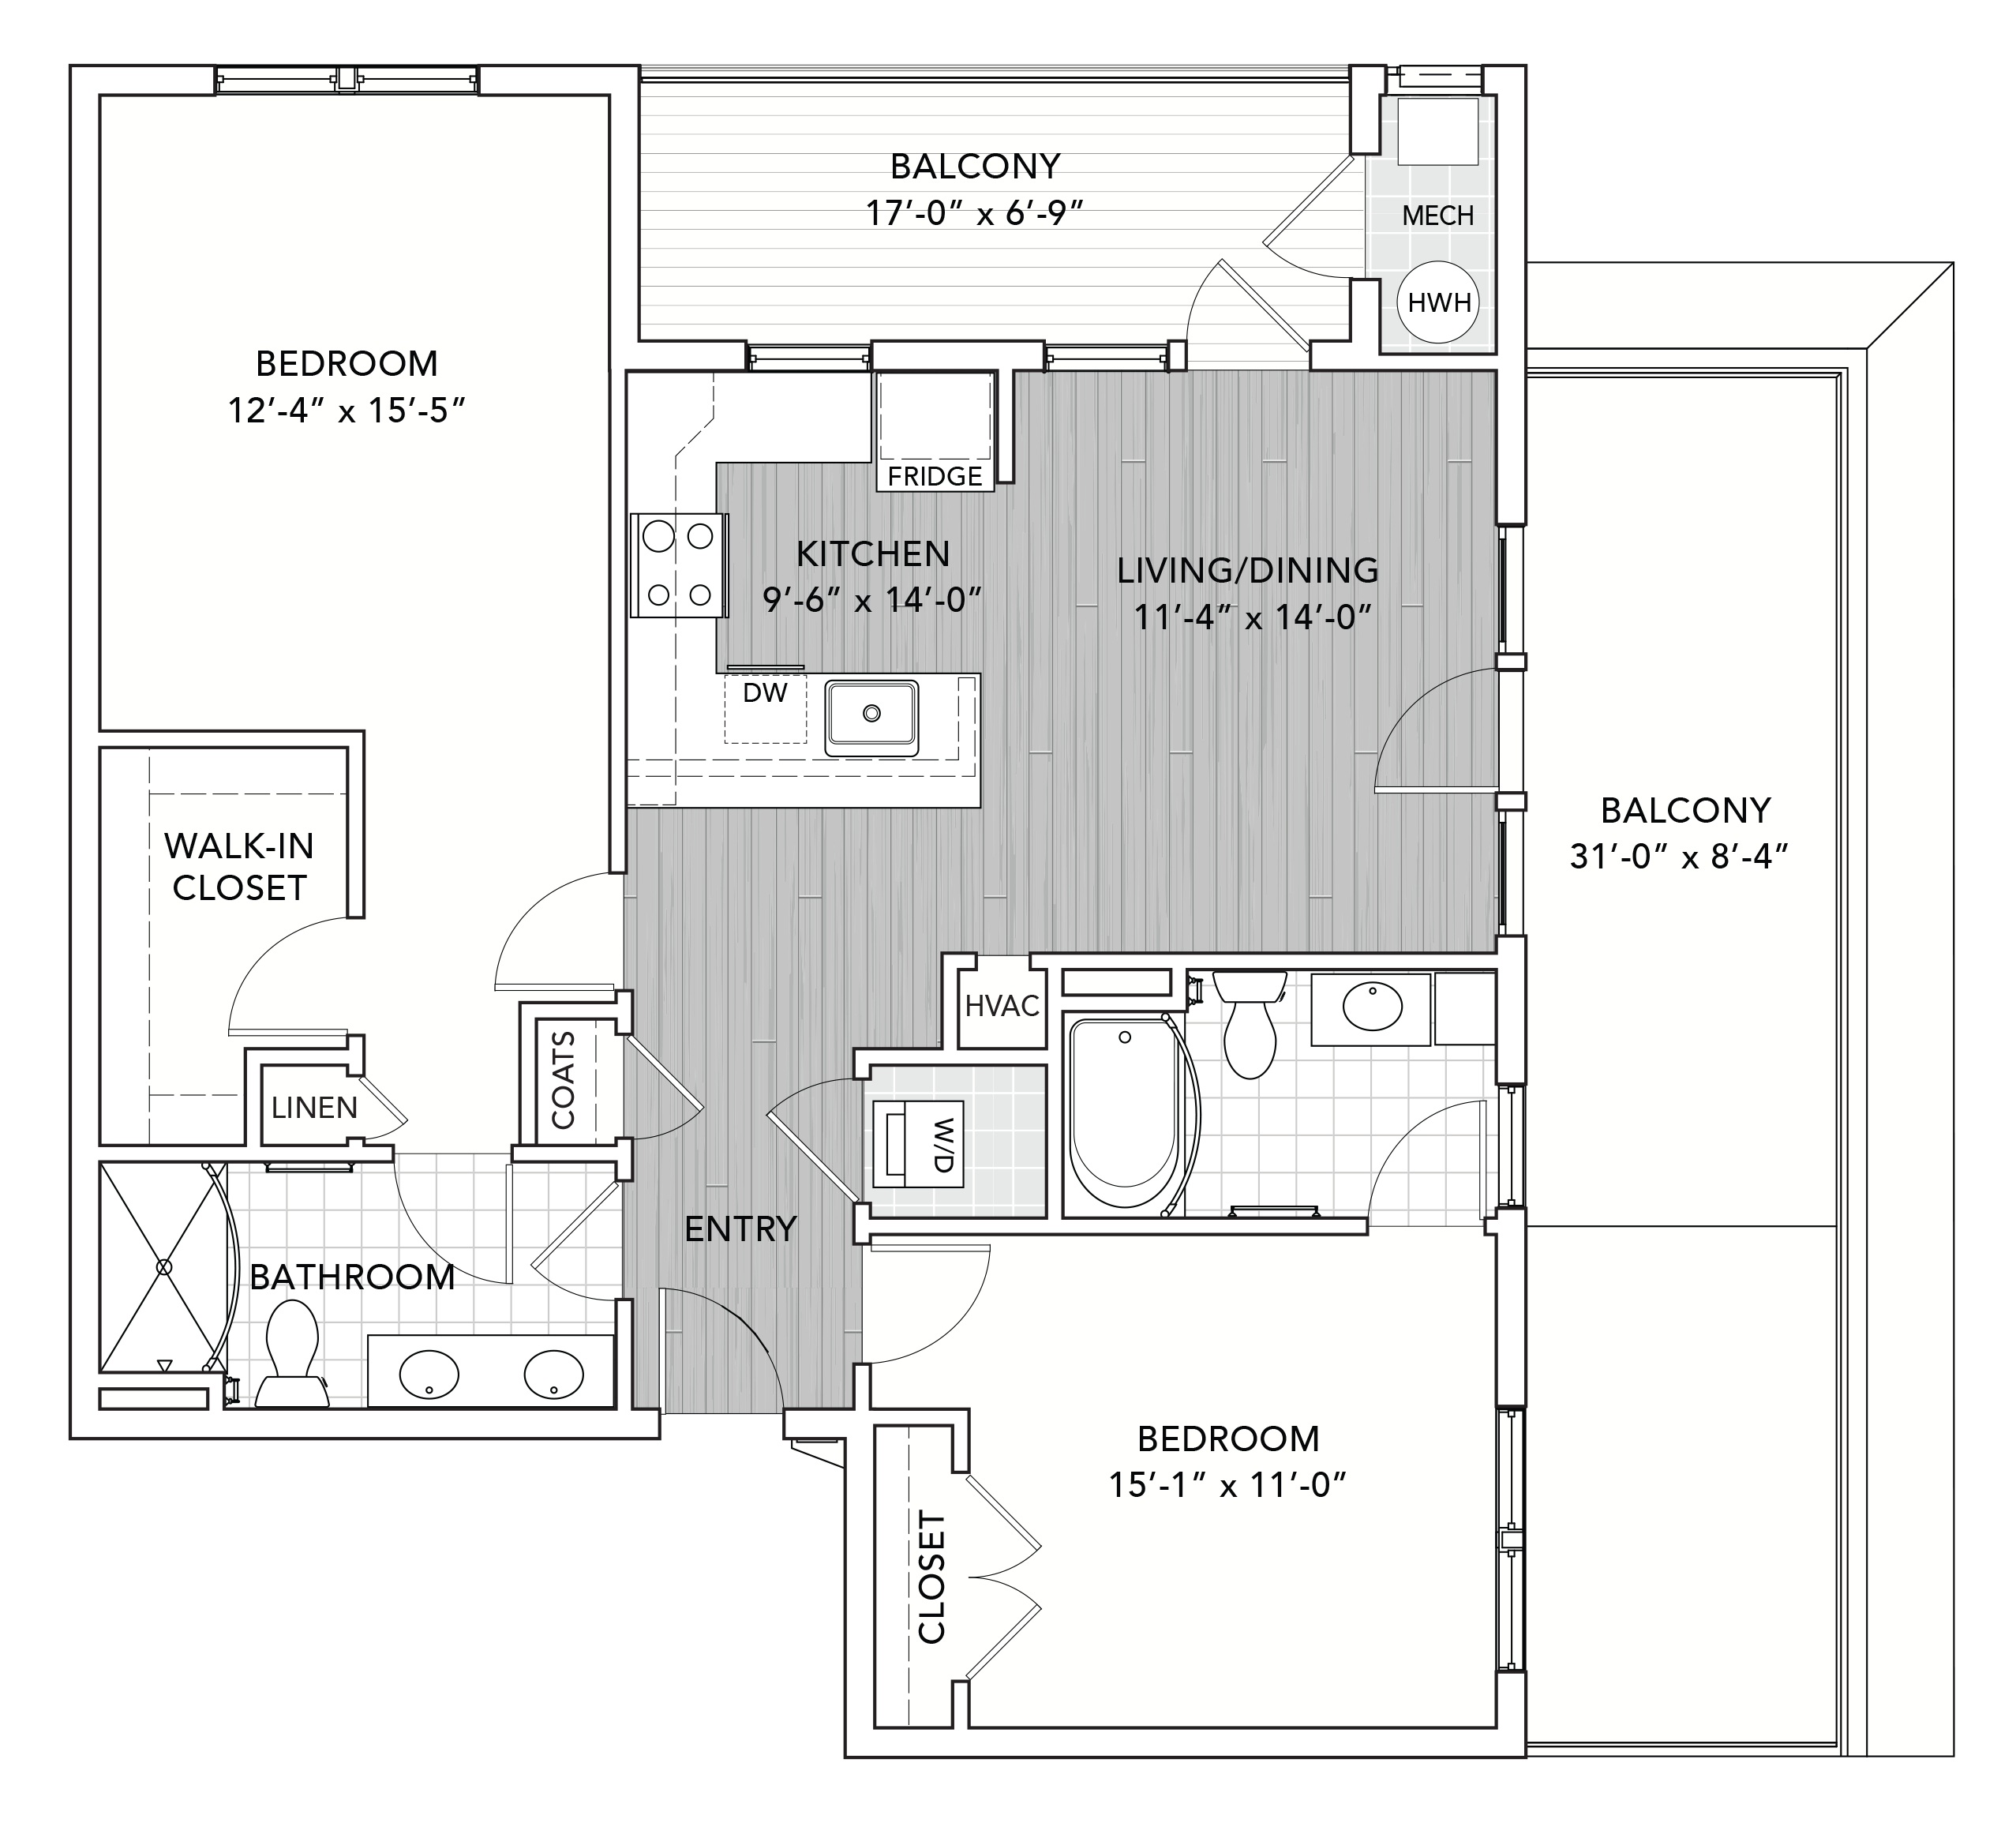 P0655013 parksquare b21 1175 2 floorplan